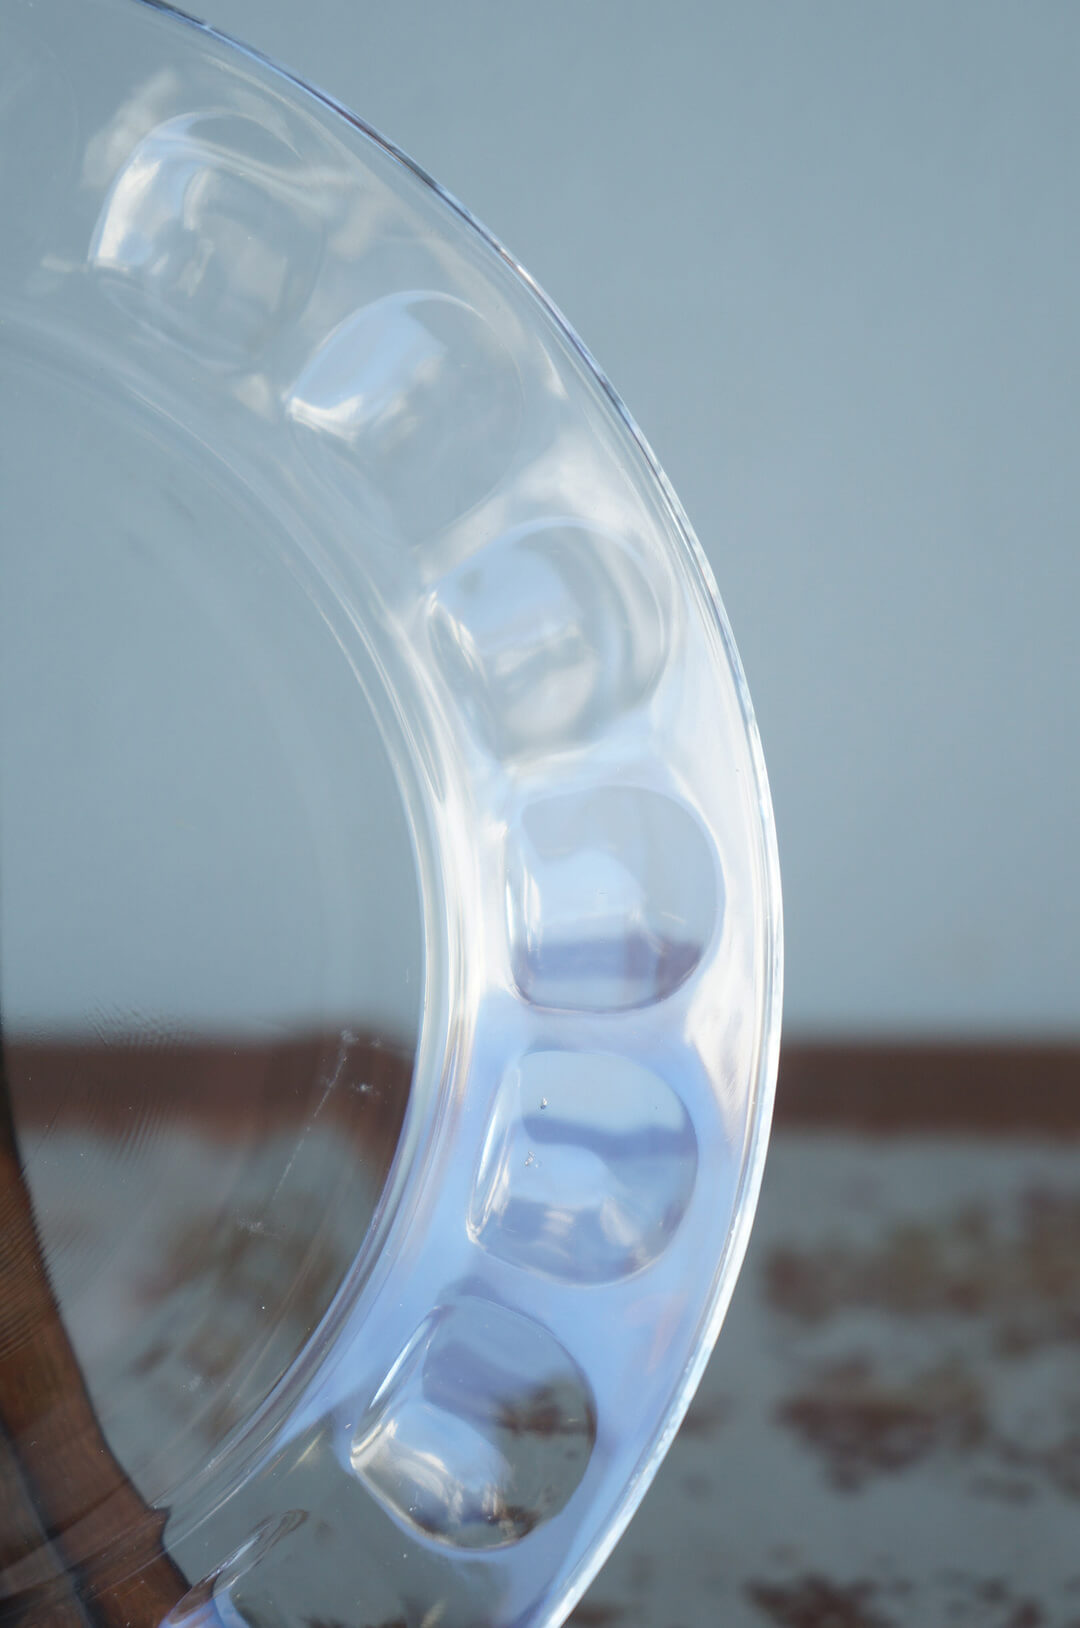 arcoroc Plate Glass Ware Made In France/アルコロック プレート ガラス フランス製 食器 レトロ スモールサイズ 1